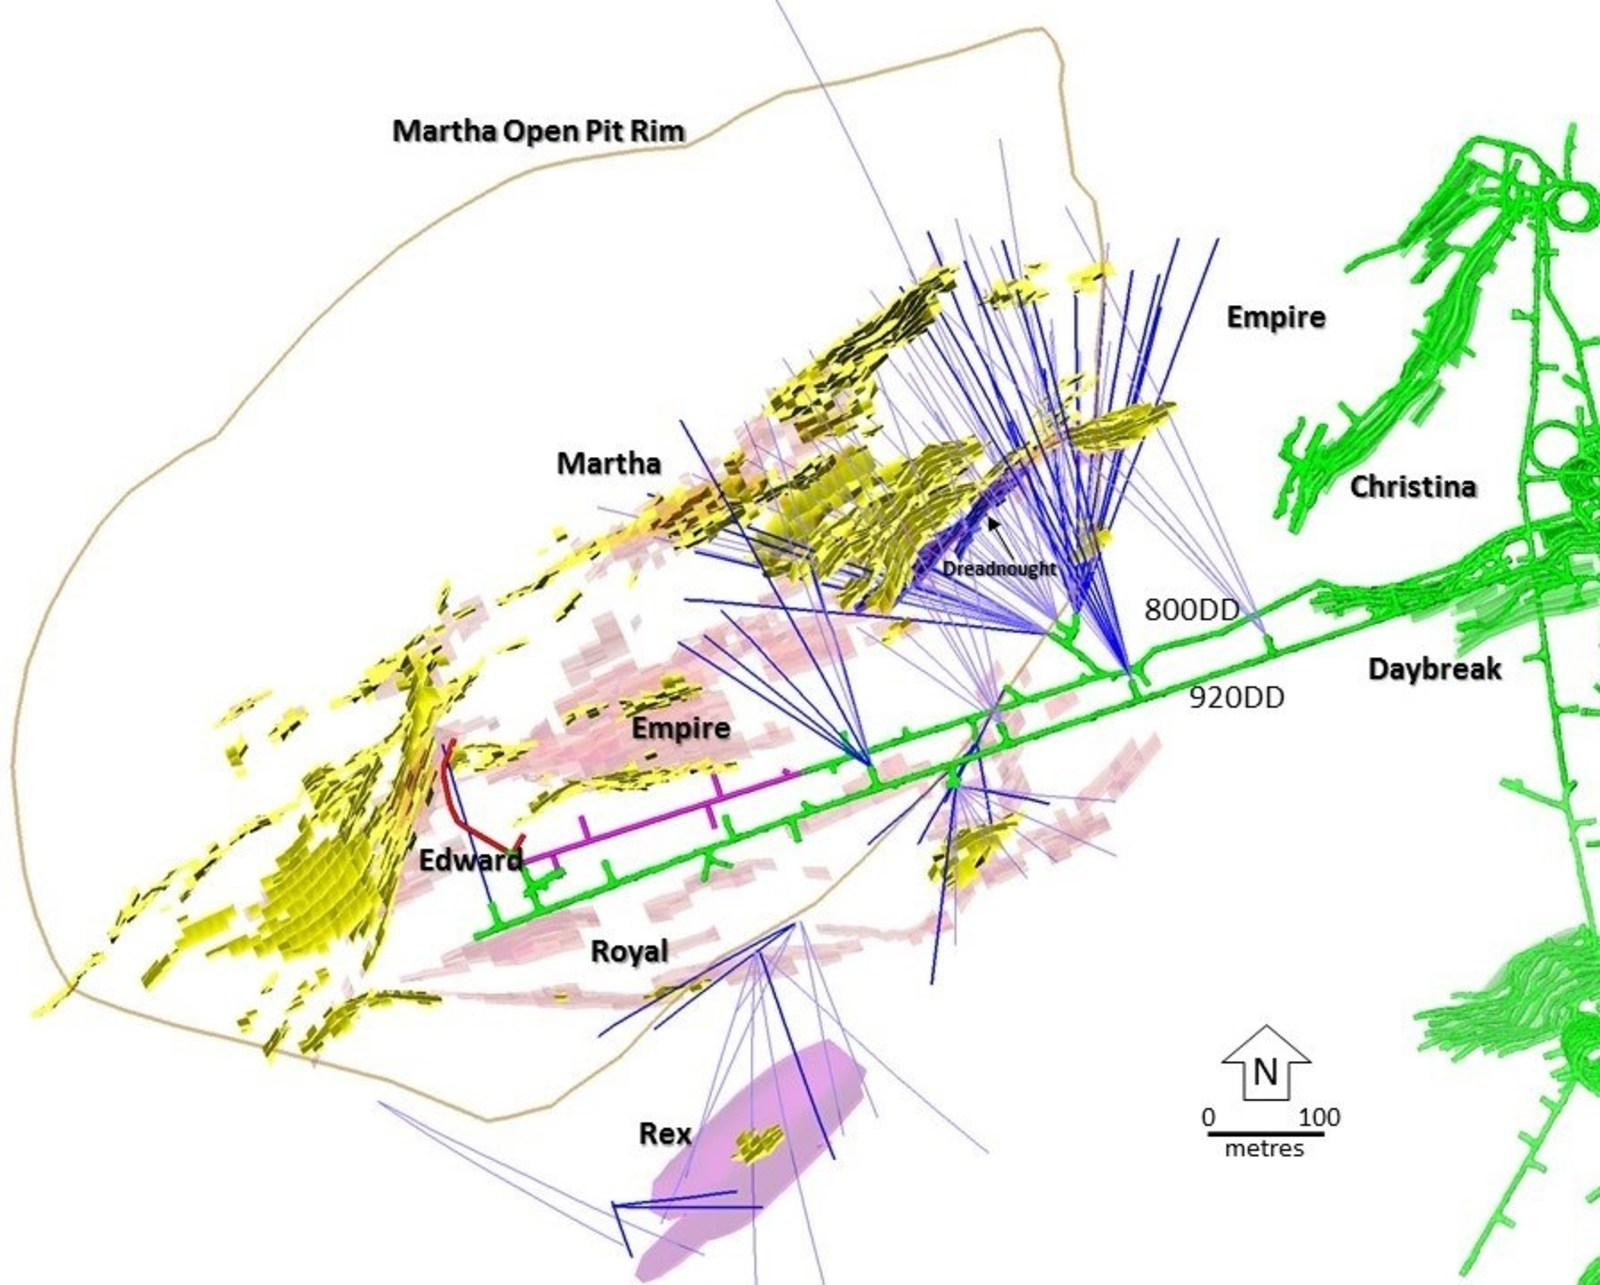 Figure 2 – Plan View showing drill holes within the Martha vein system and the dominant targeted veins as well as the new Dreadnought vein. Pink = Main Target Areas, Yellow = Current Martha Underground Resource Areas, Green = Recent and Current Mining Areas.